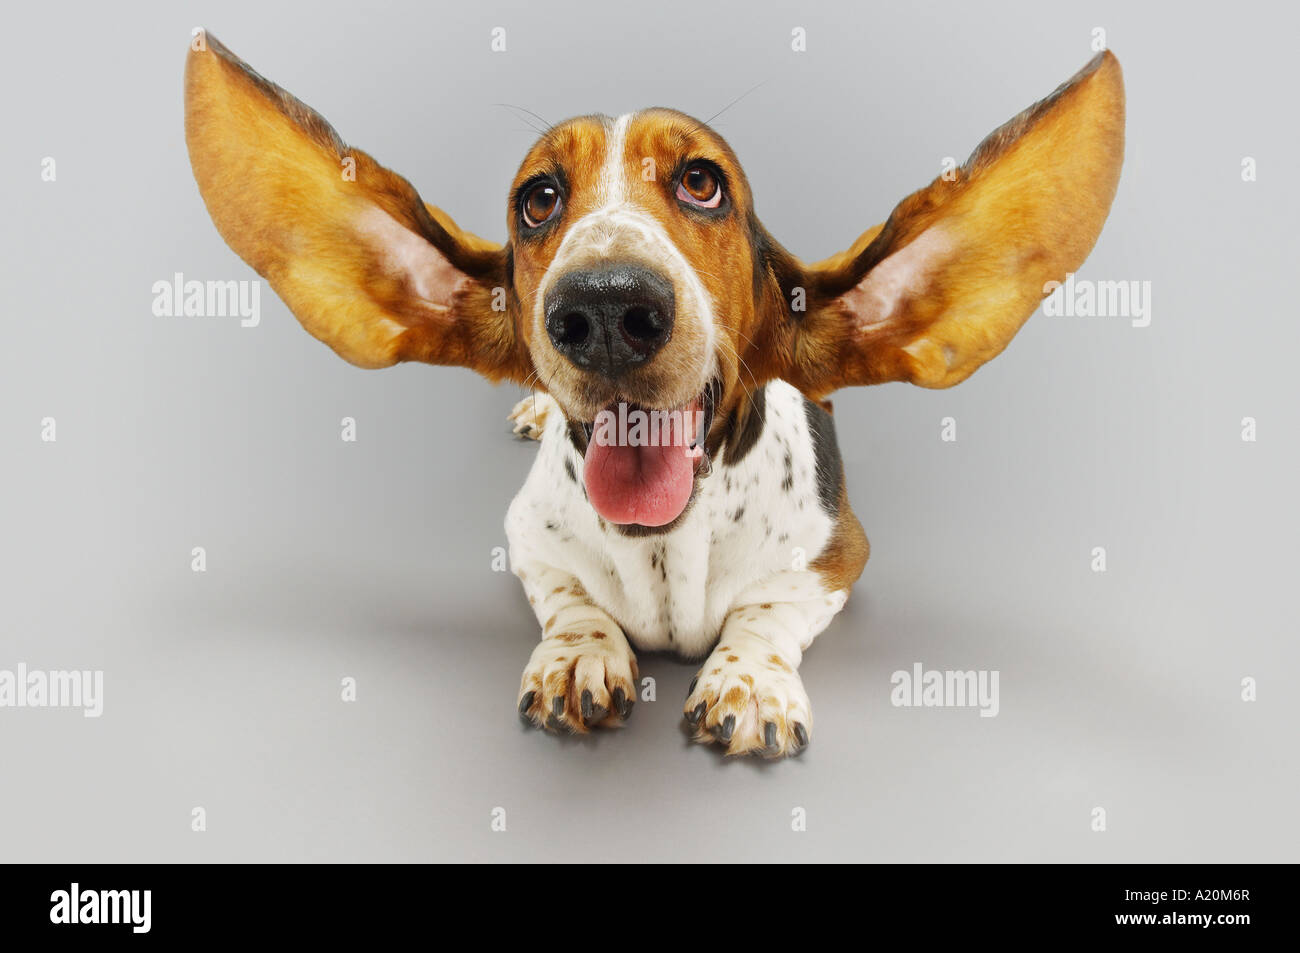 Basset hound, lying down, ears extended - Stock Image